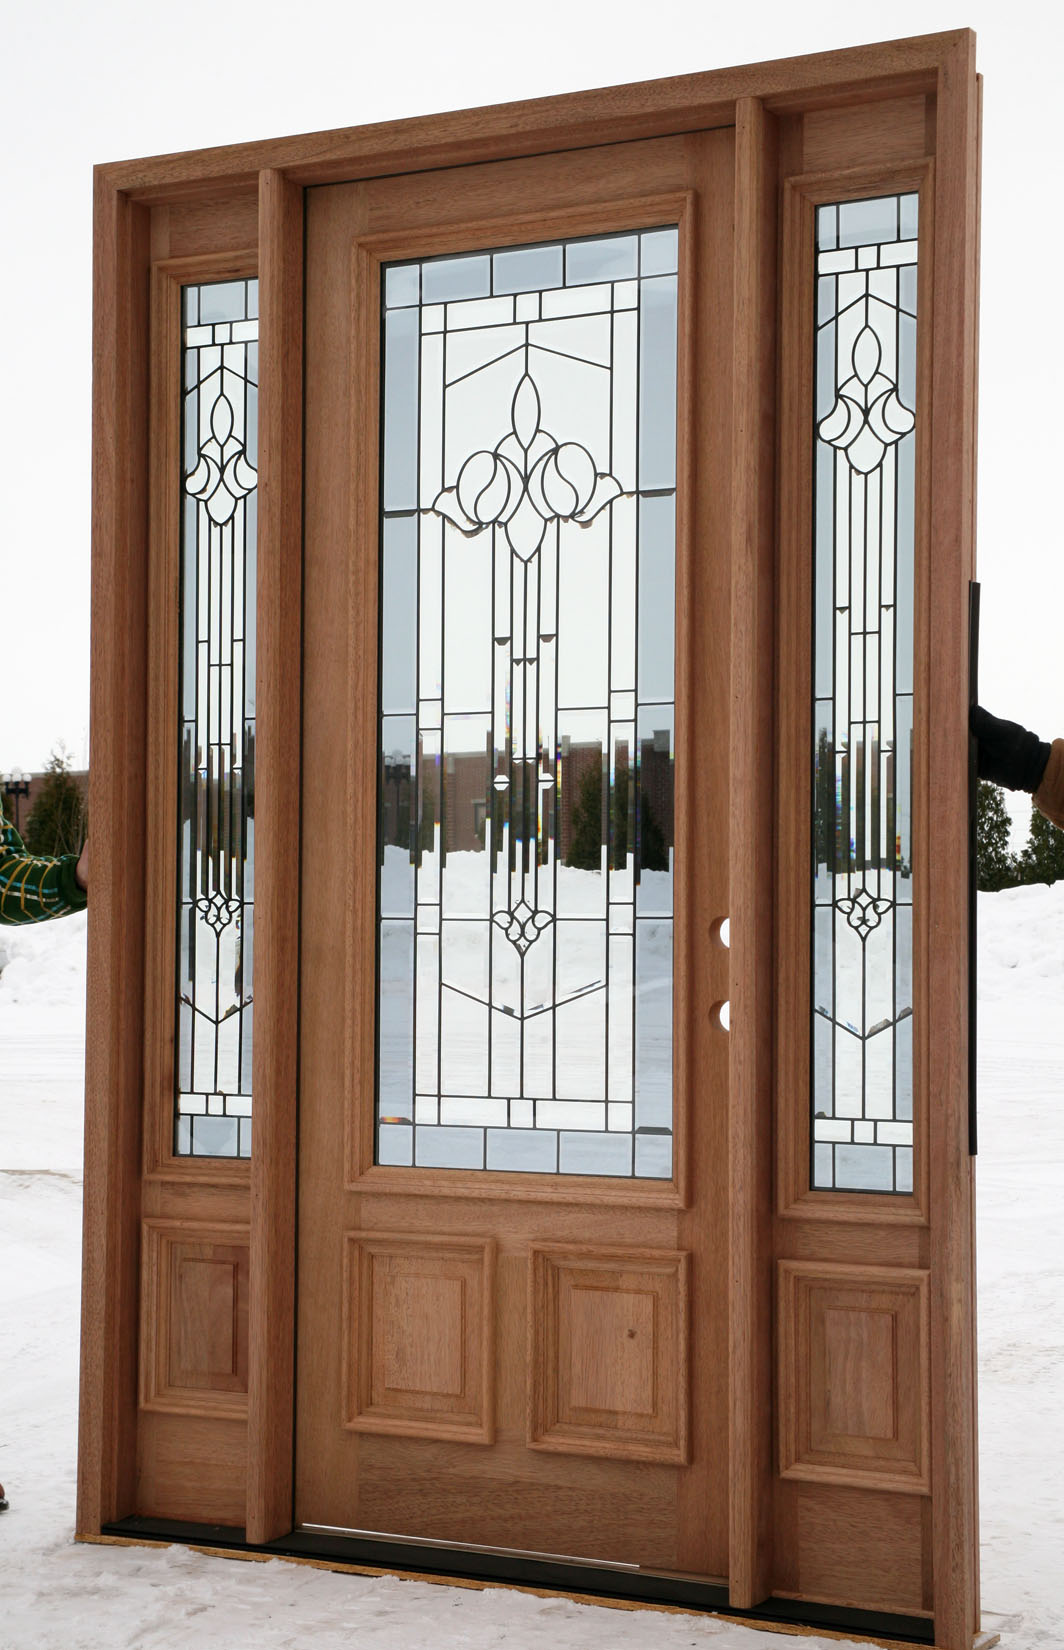 1650 #70462E Exterior Entry Door With Sidelights pic Doors Entry 44411064